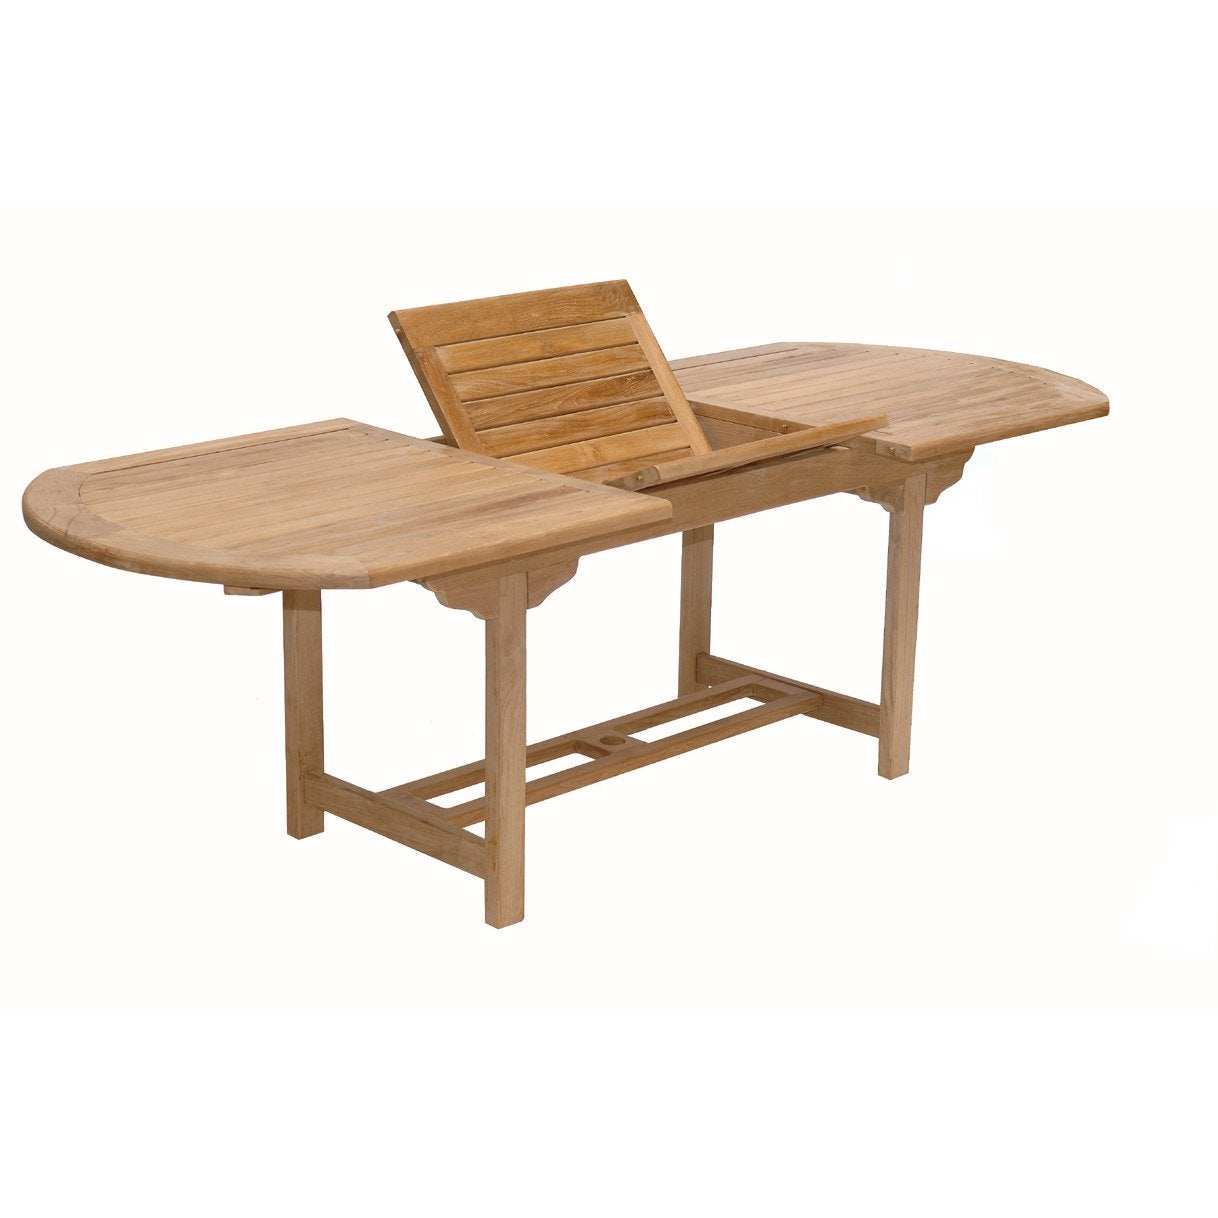 Table De Jardin Azur Ovale Naturel 8 Personnes Leroy Merlin